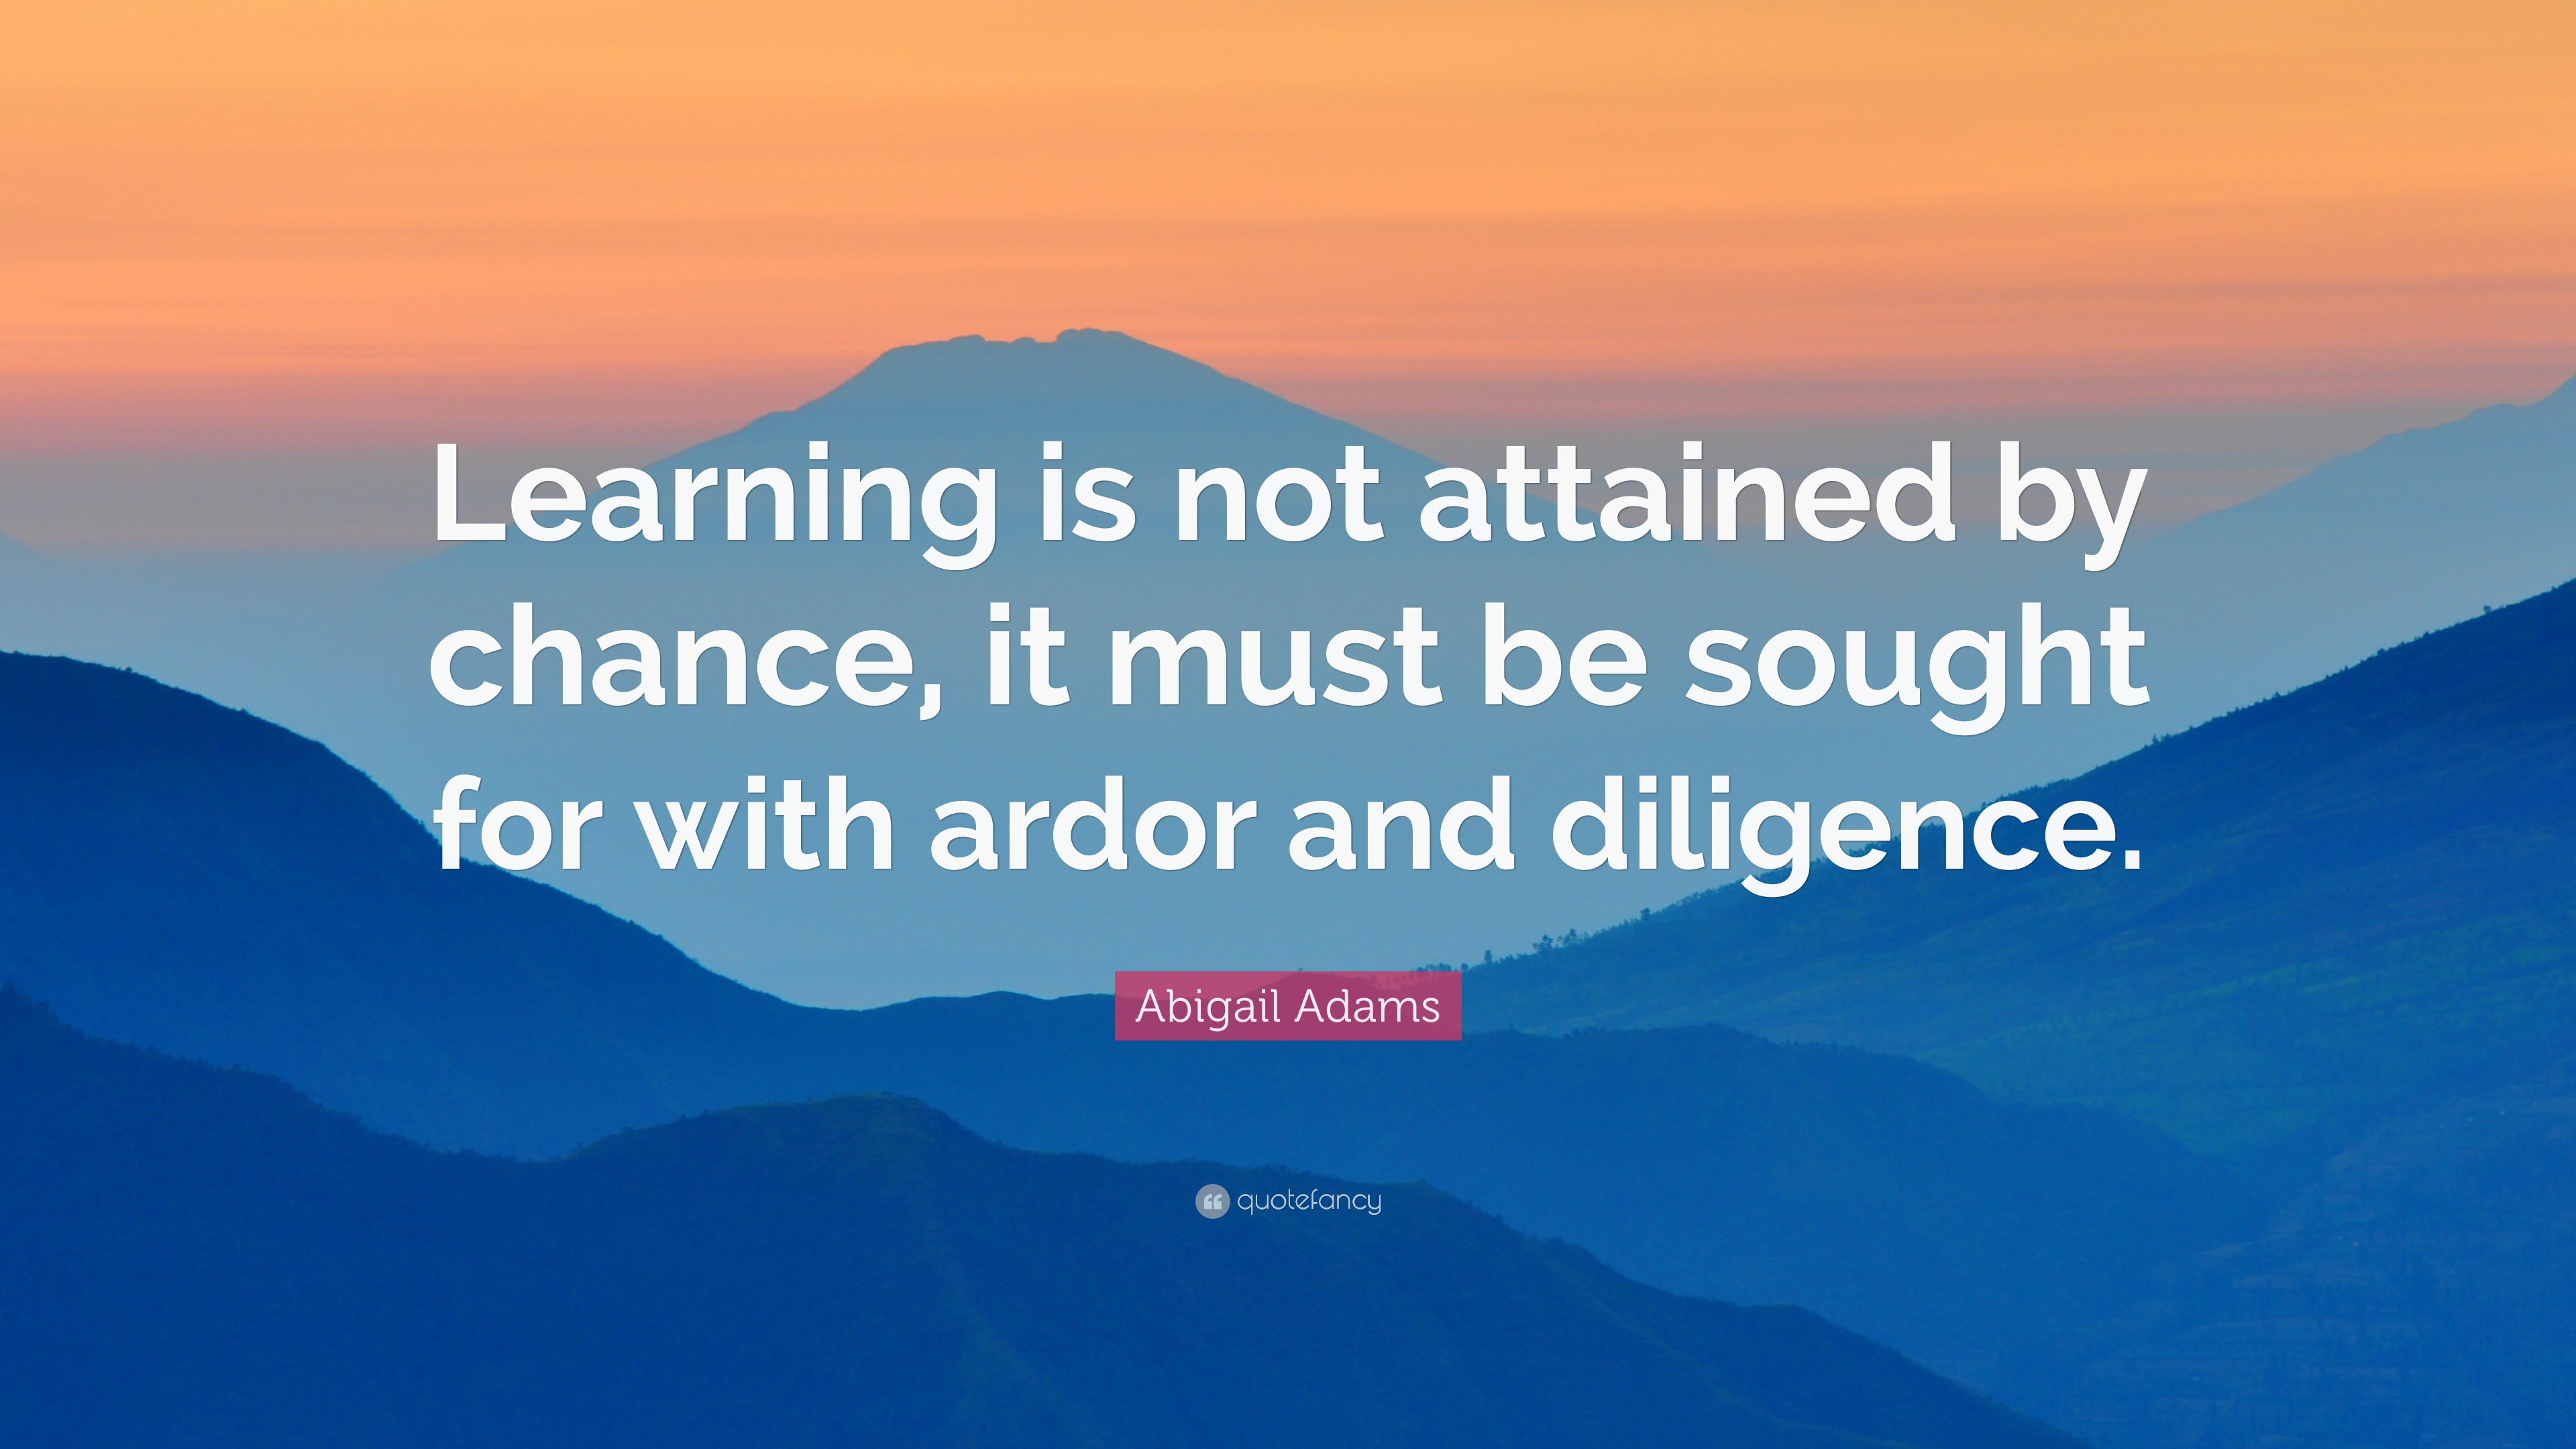 Abigail Adams Quote Learning Is Not Attained By Chance It Must Be Sought For With Ardor And Diligence 23 Wallpapers Quotefancy